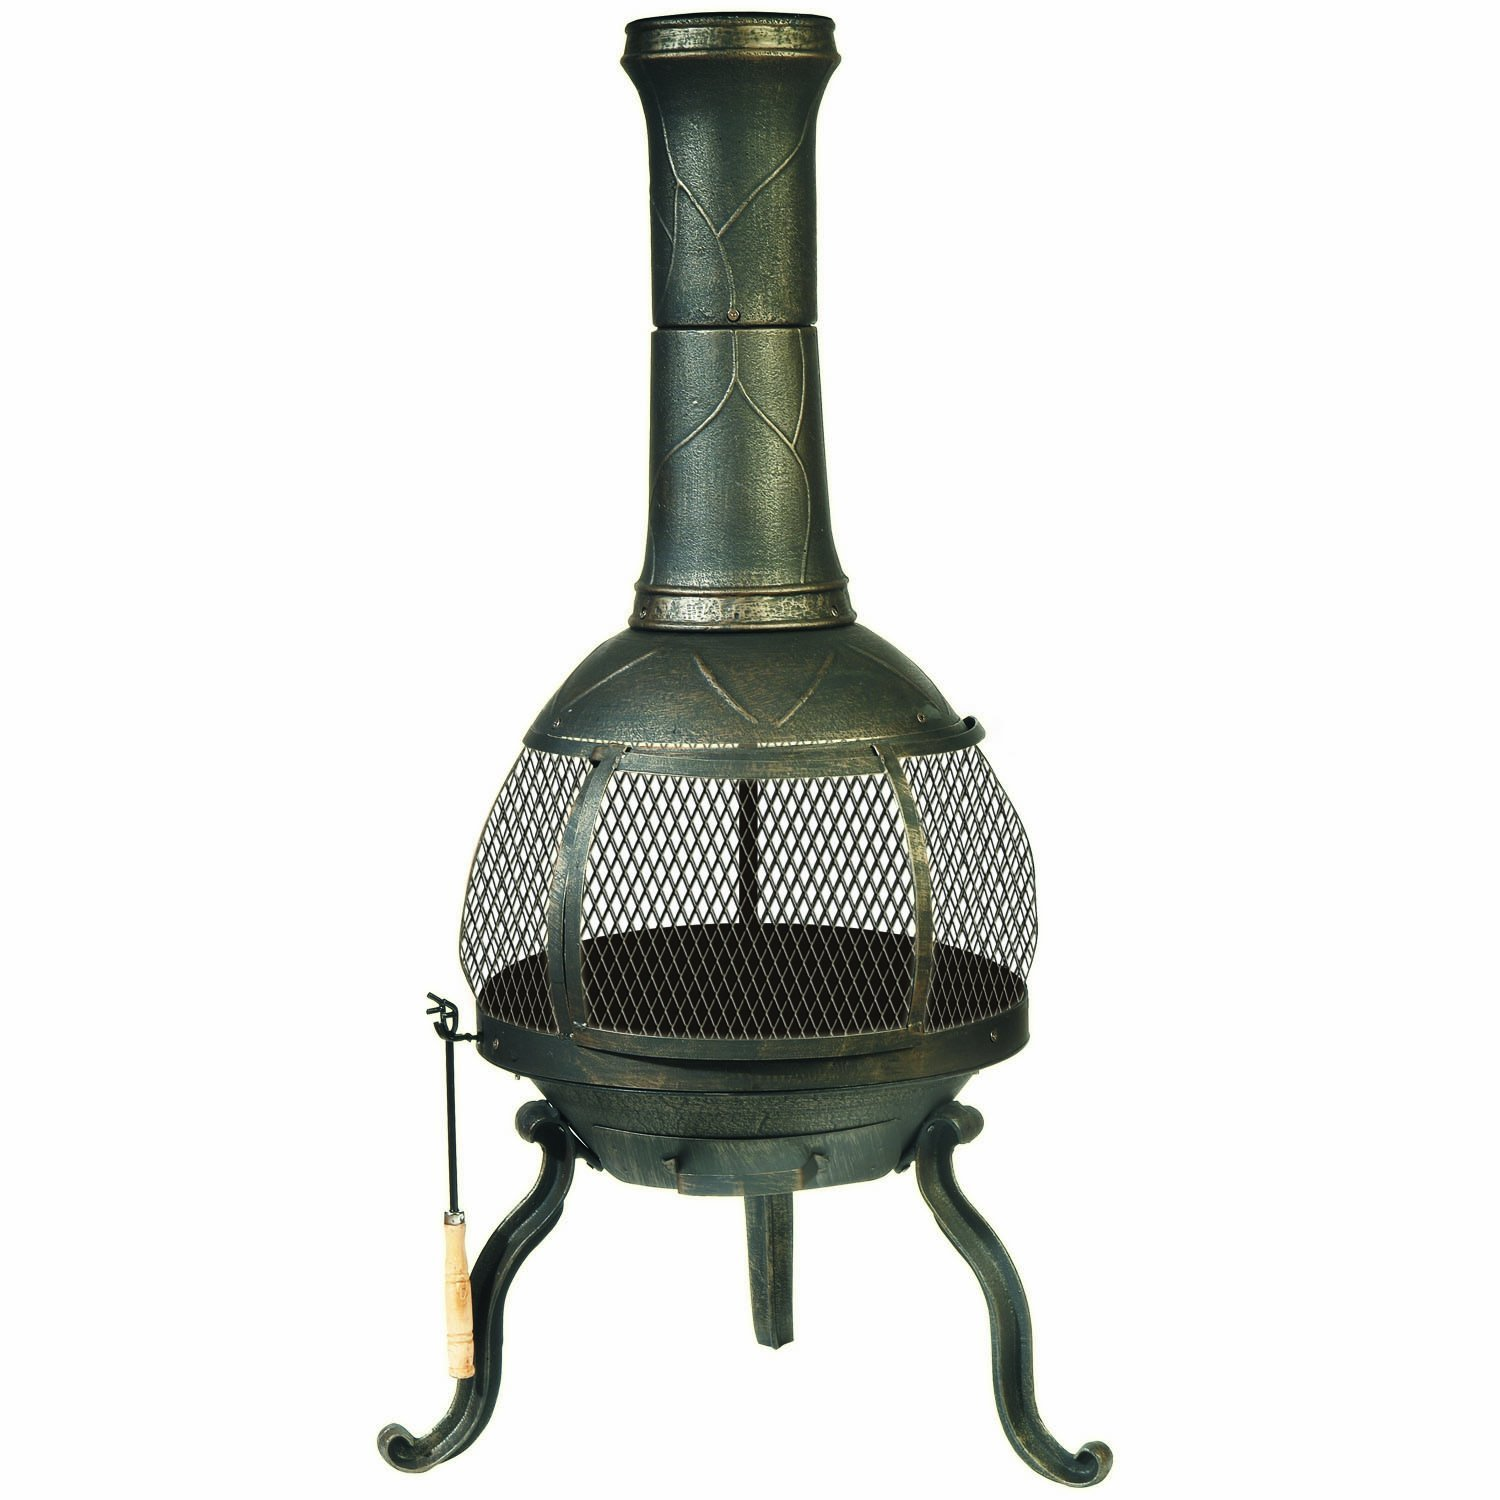 Deckmate Outdoor Fireplace